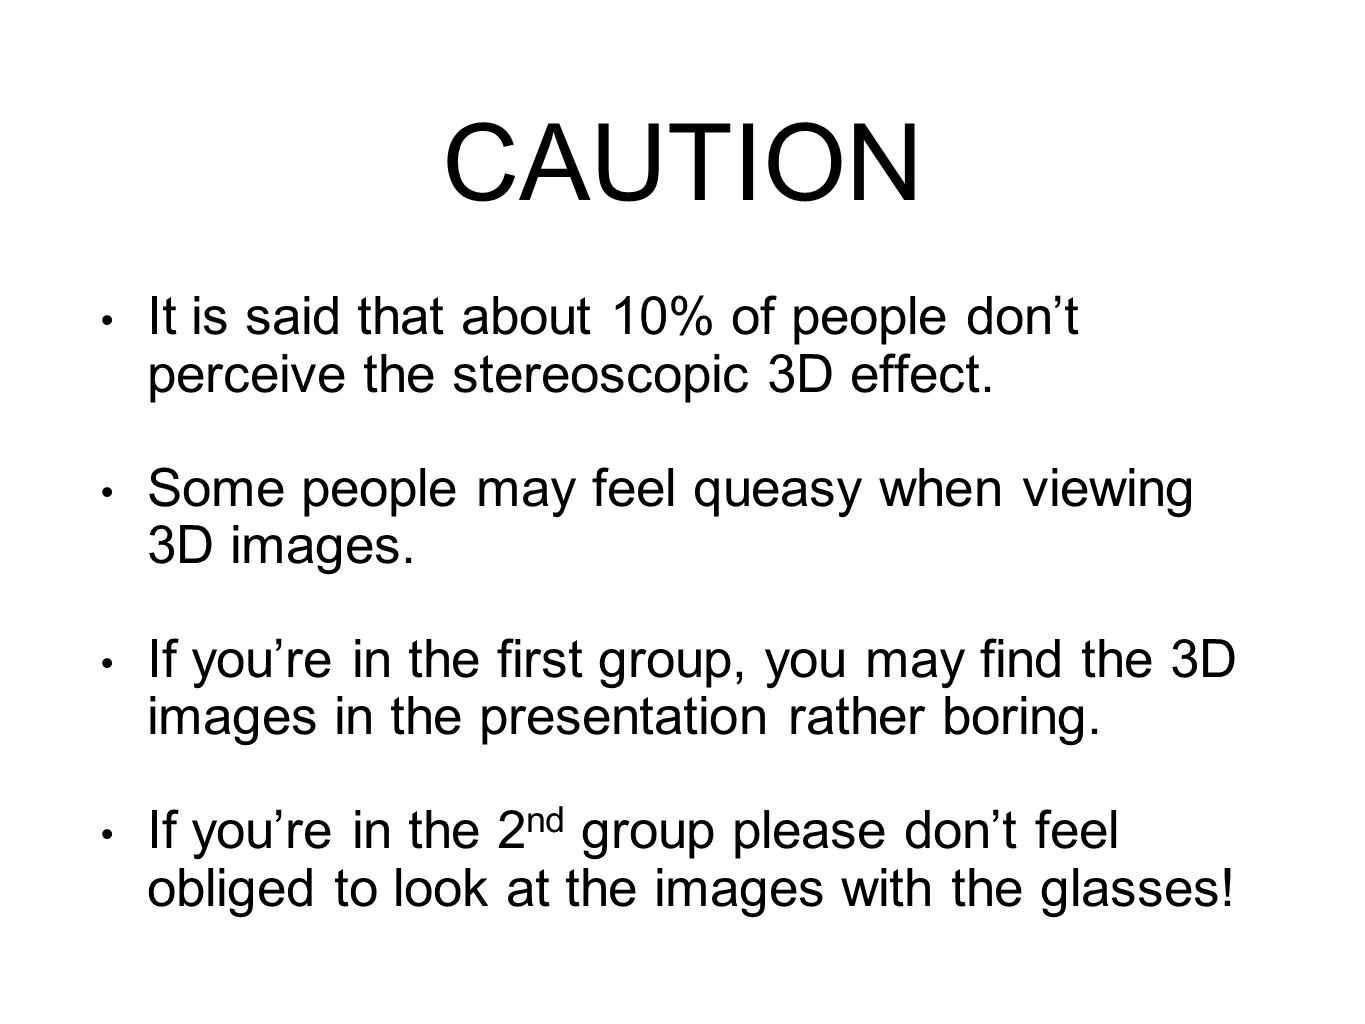 CAUTION It is said that about 10% of people don't perceive the stereoscopic 3D effect.